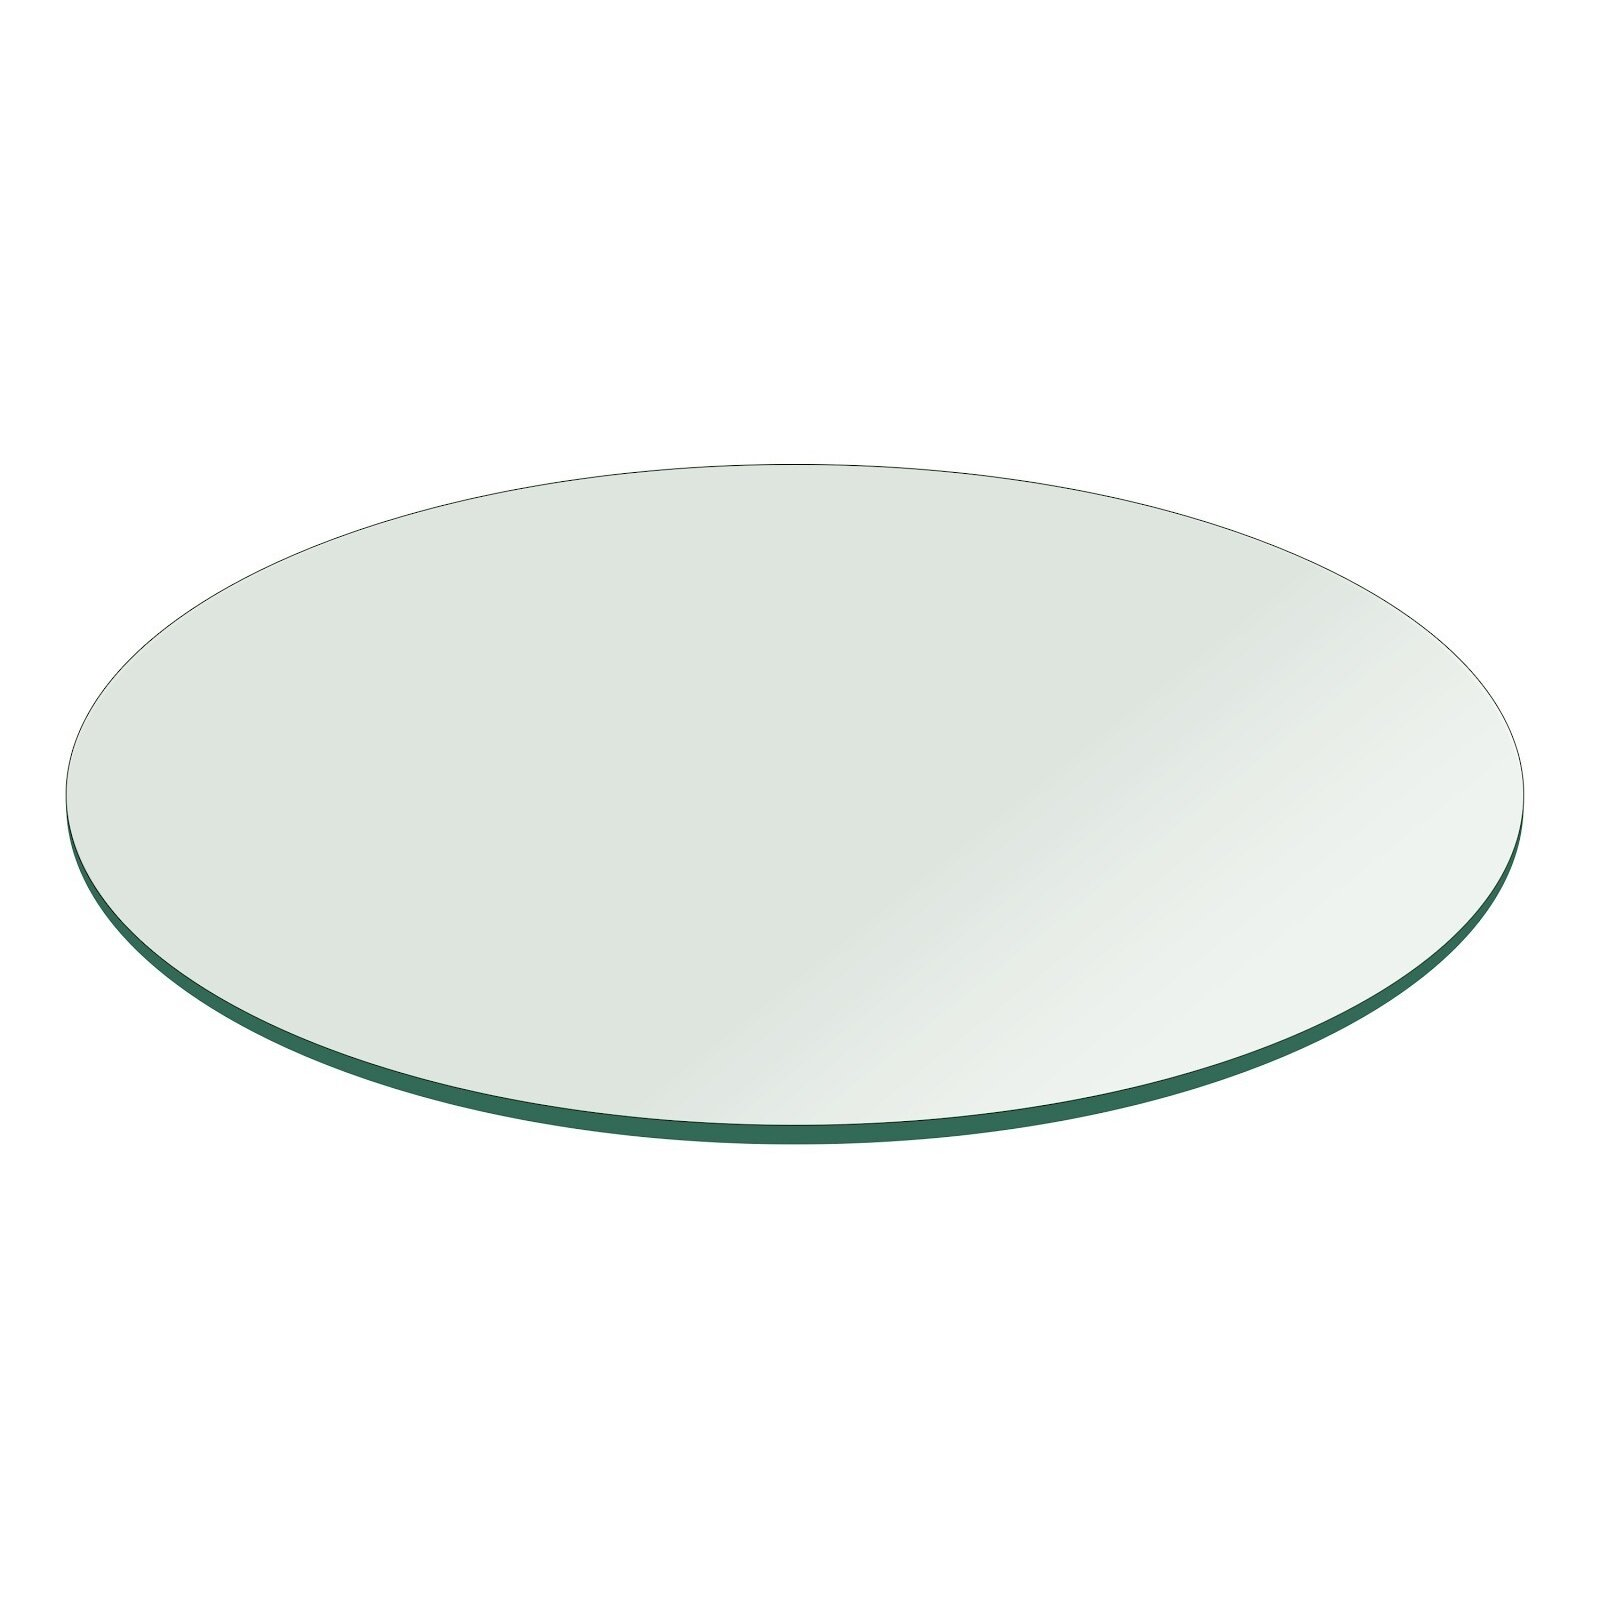 fab glass and mirror round flat polish tempered glass table top wayfair. Black Bedroom Furniture Sets. Home Design Ideas